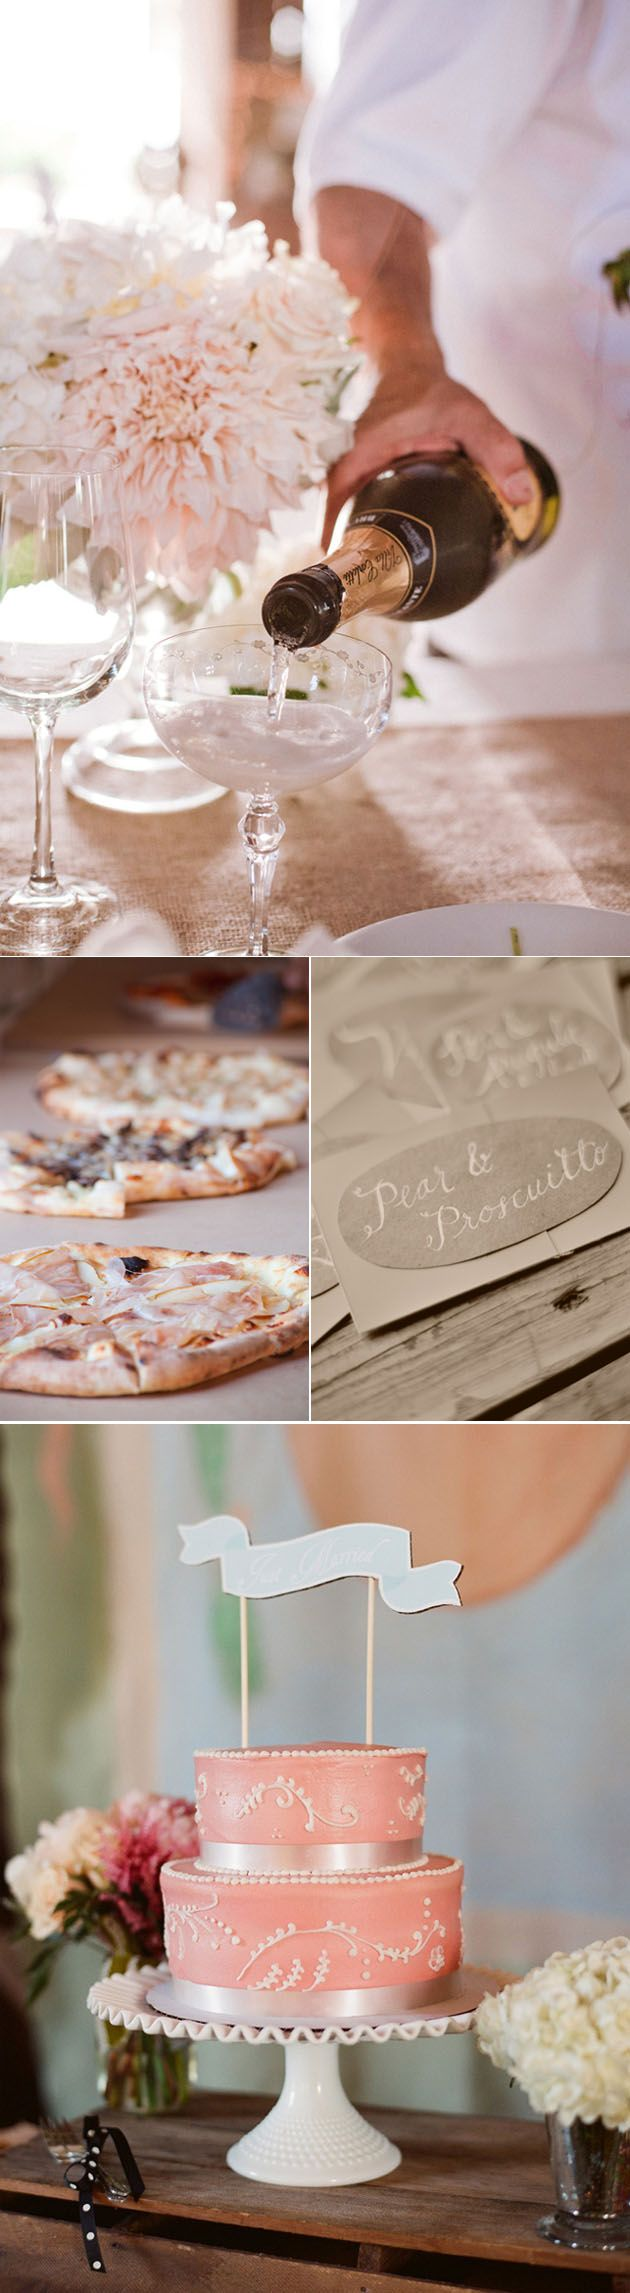 Cake And Punch Reception Decor : 31 best images about Cake and Punch Wedding on Pinterest